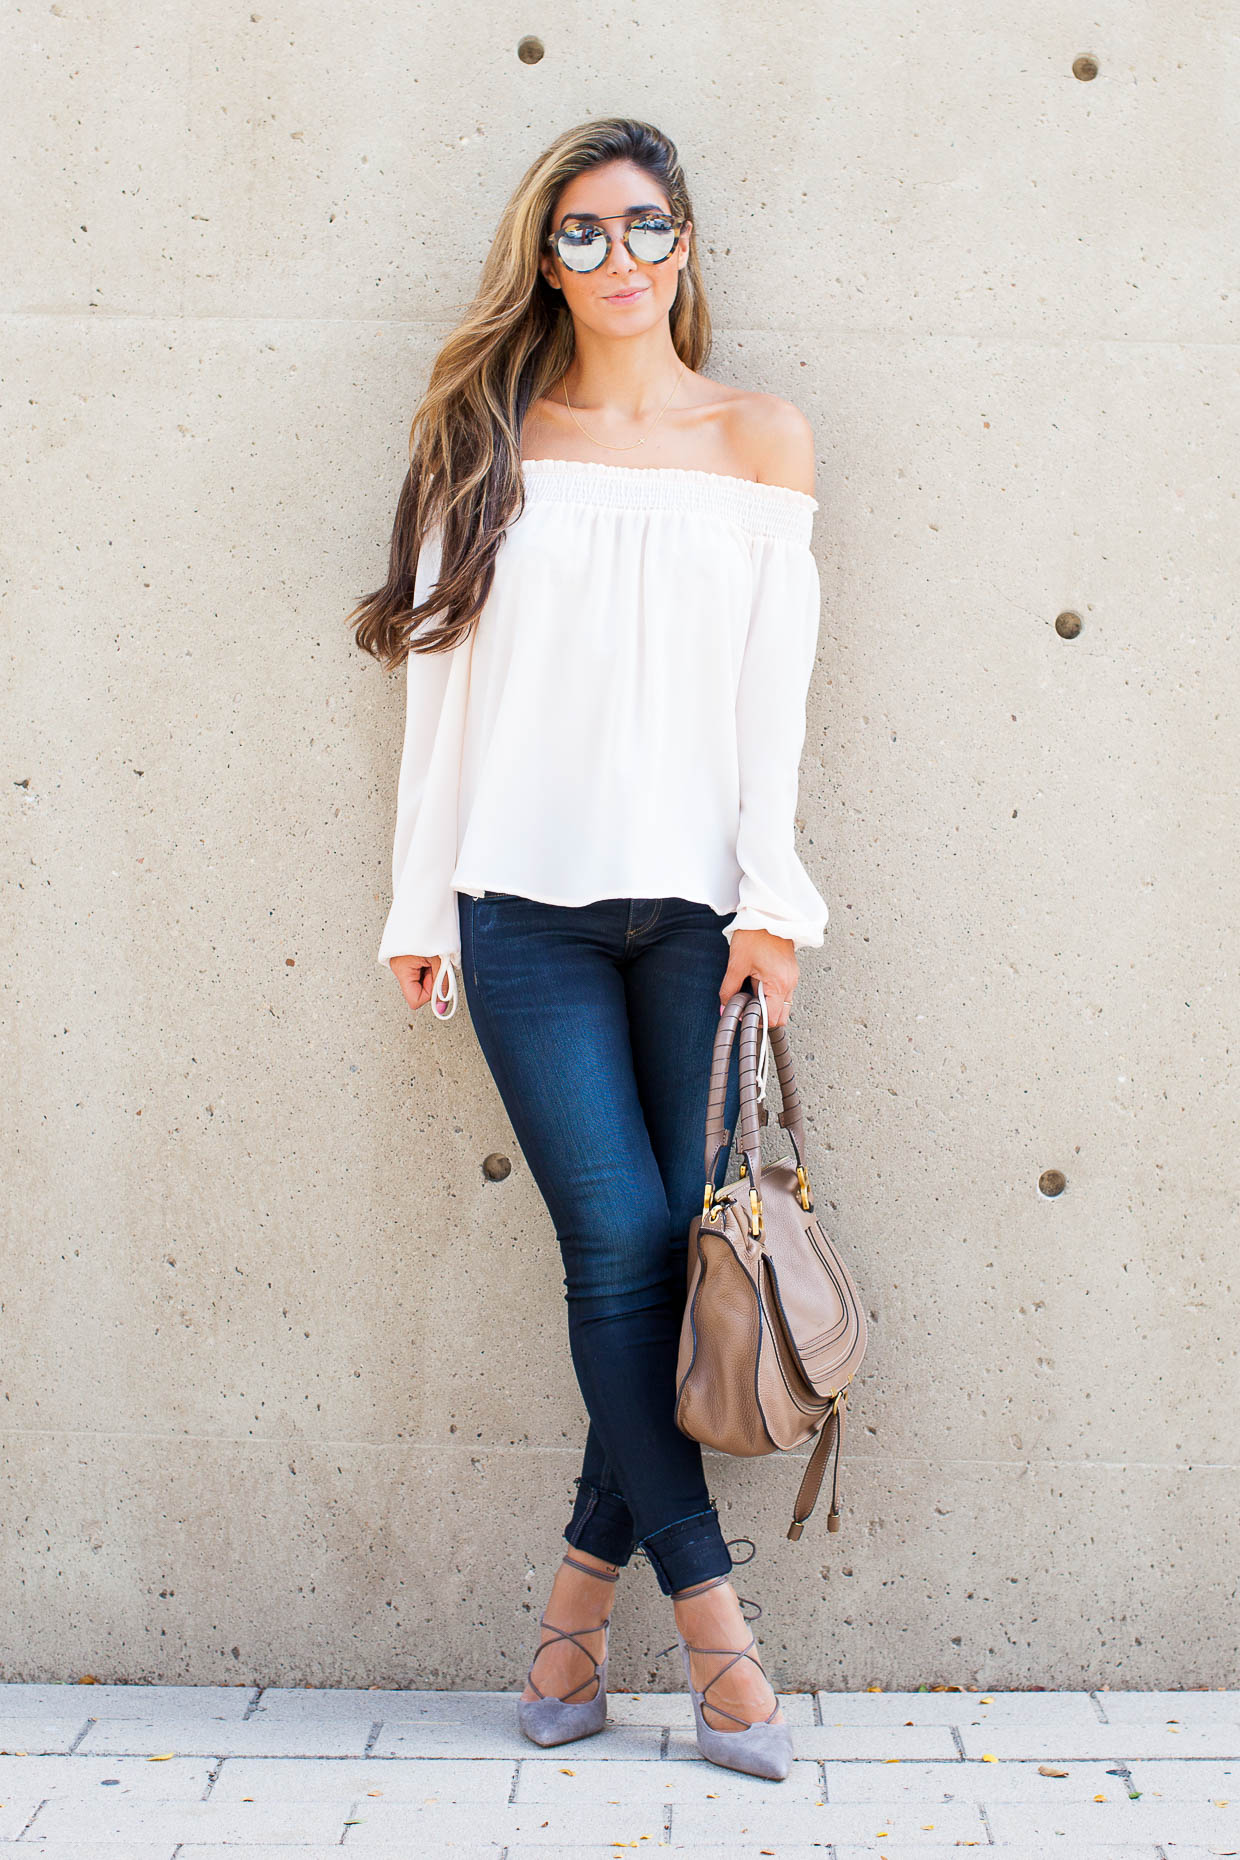 Fashion Blogger The Darling Detail is wearing a Chelsea28 Off the Shoulder Top, rag & bone/JEAN 'The Skinny' Skinny Jeans (Dearborn), Sole Society Madeline Lace-Up Pumps, Westward Leaning Flower 1 Sunglasses, and is holding a Chloe 'Marcie - Small' Leather Satchel.